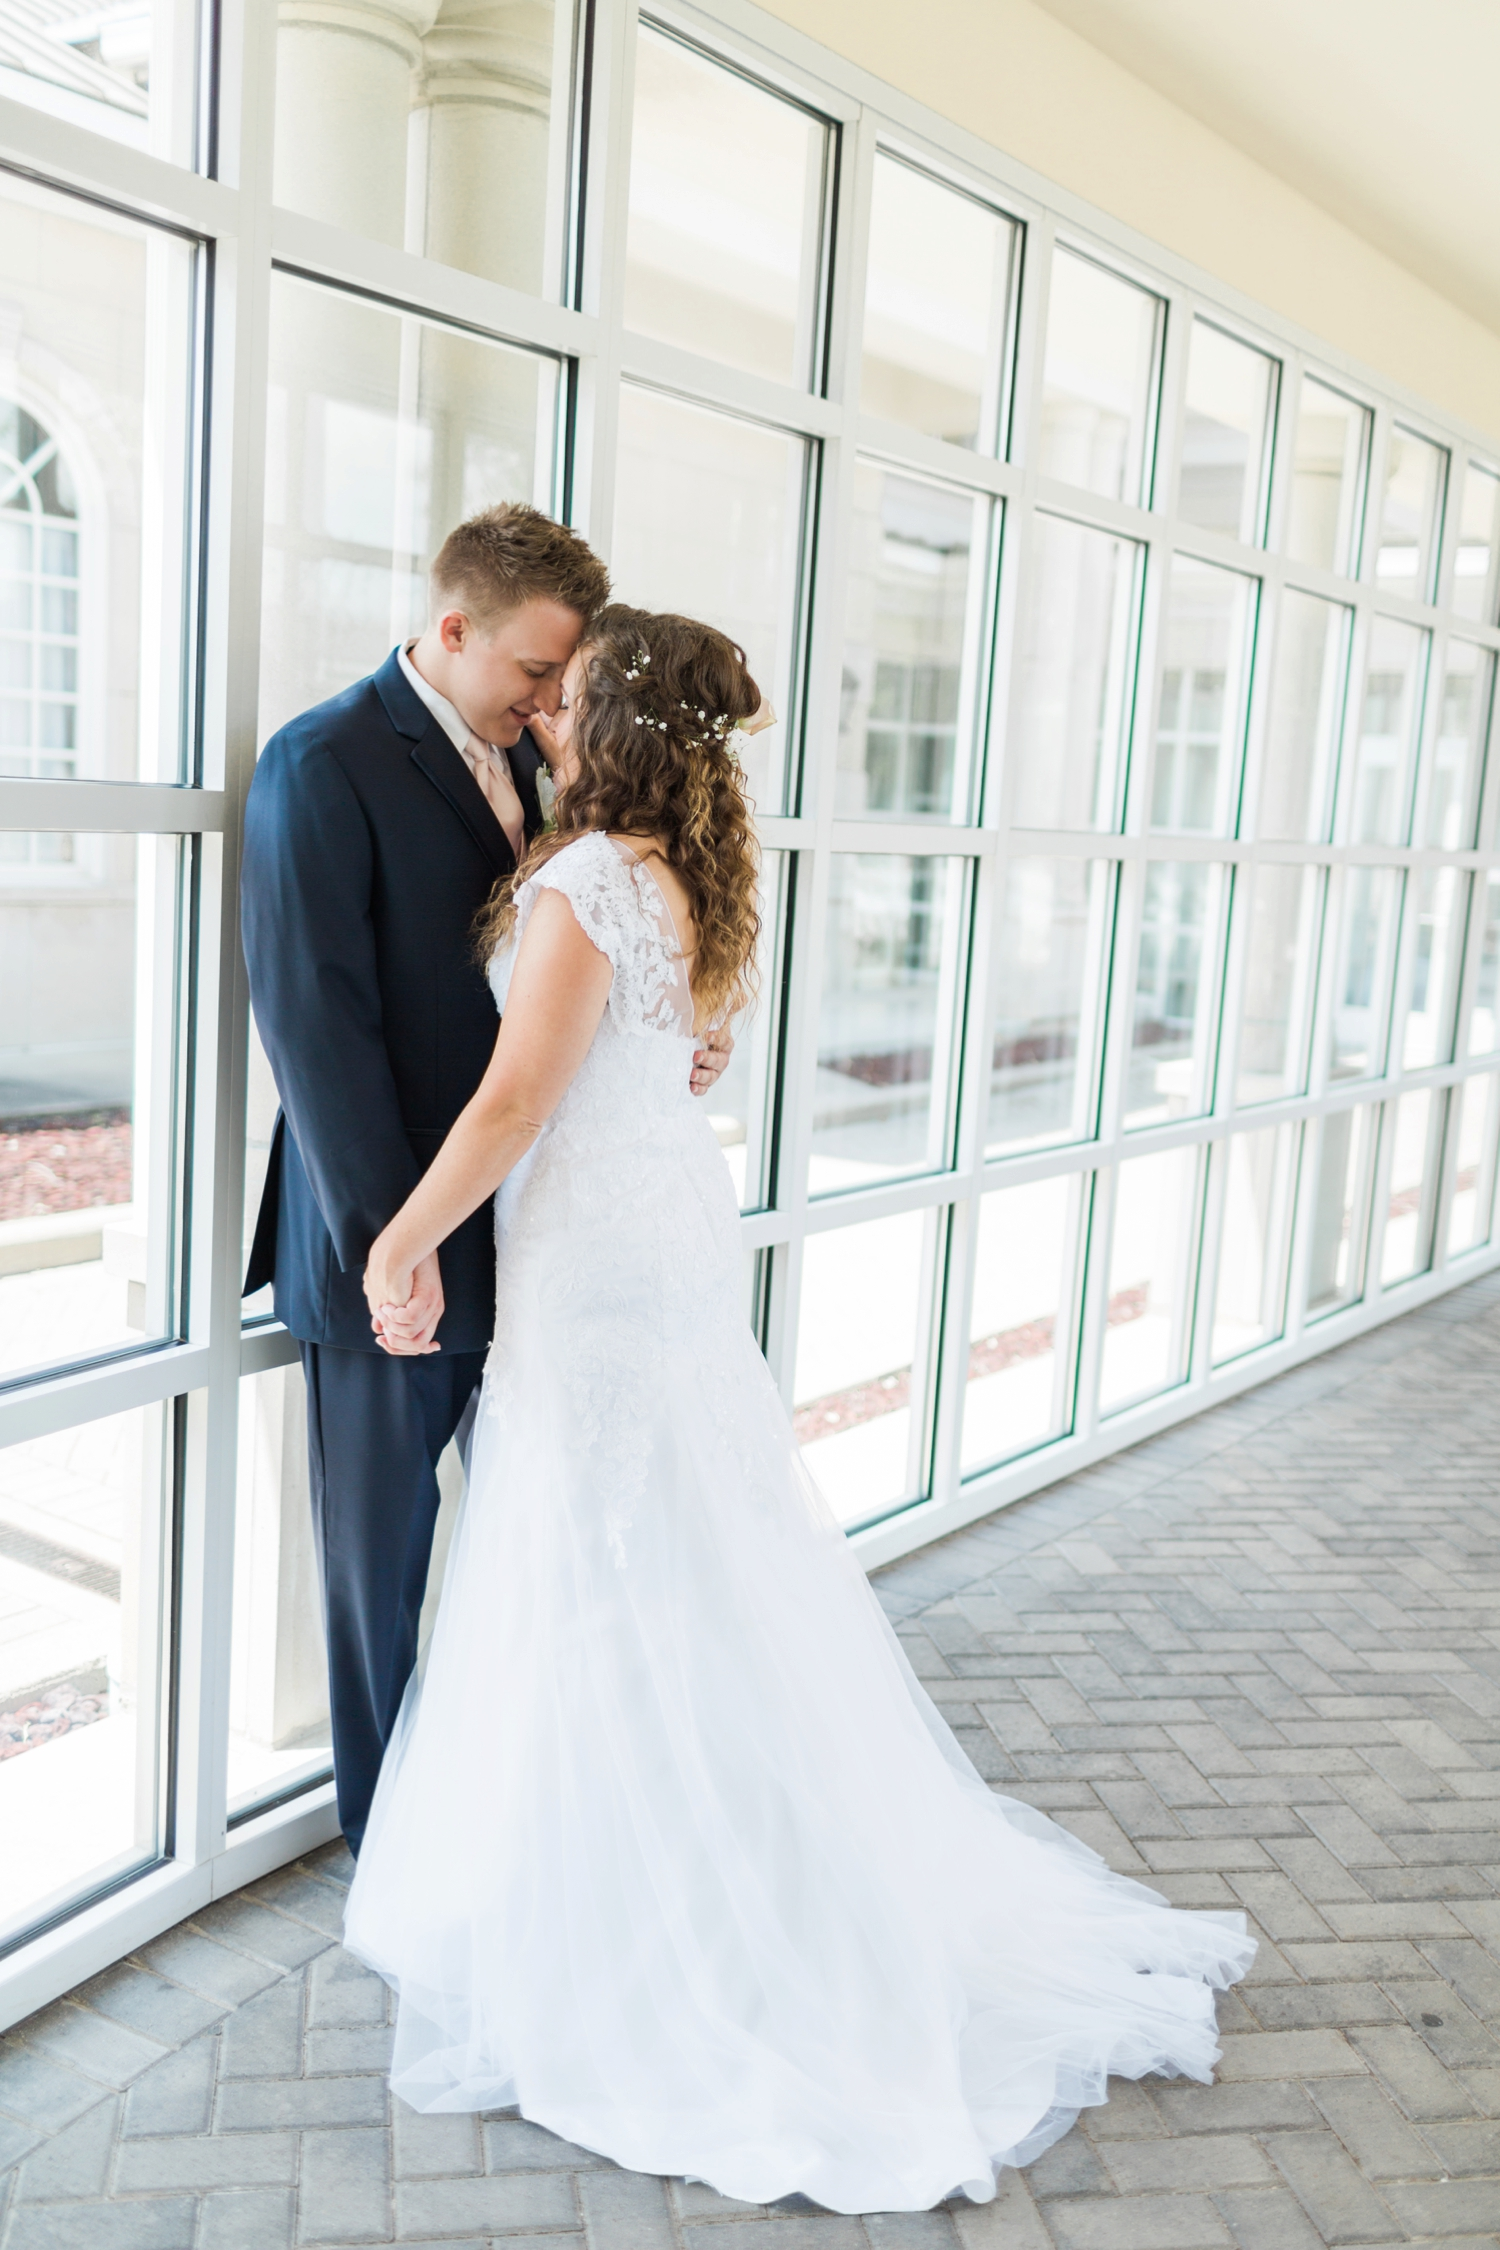 Community_Life_Center_Indianapolis_Indiana_Wedding_Photographer_Chloe_Luka_Photography_6890.jpg